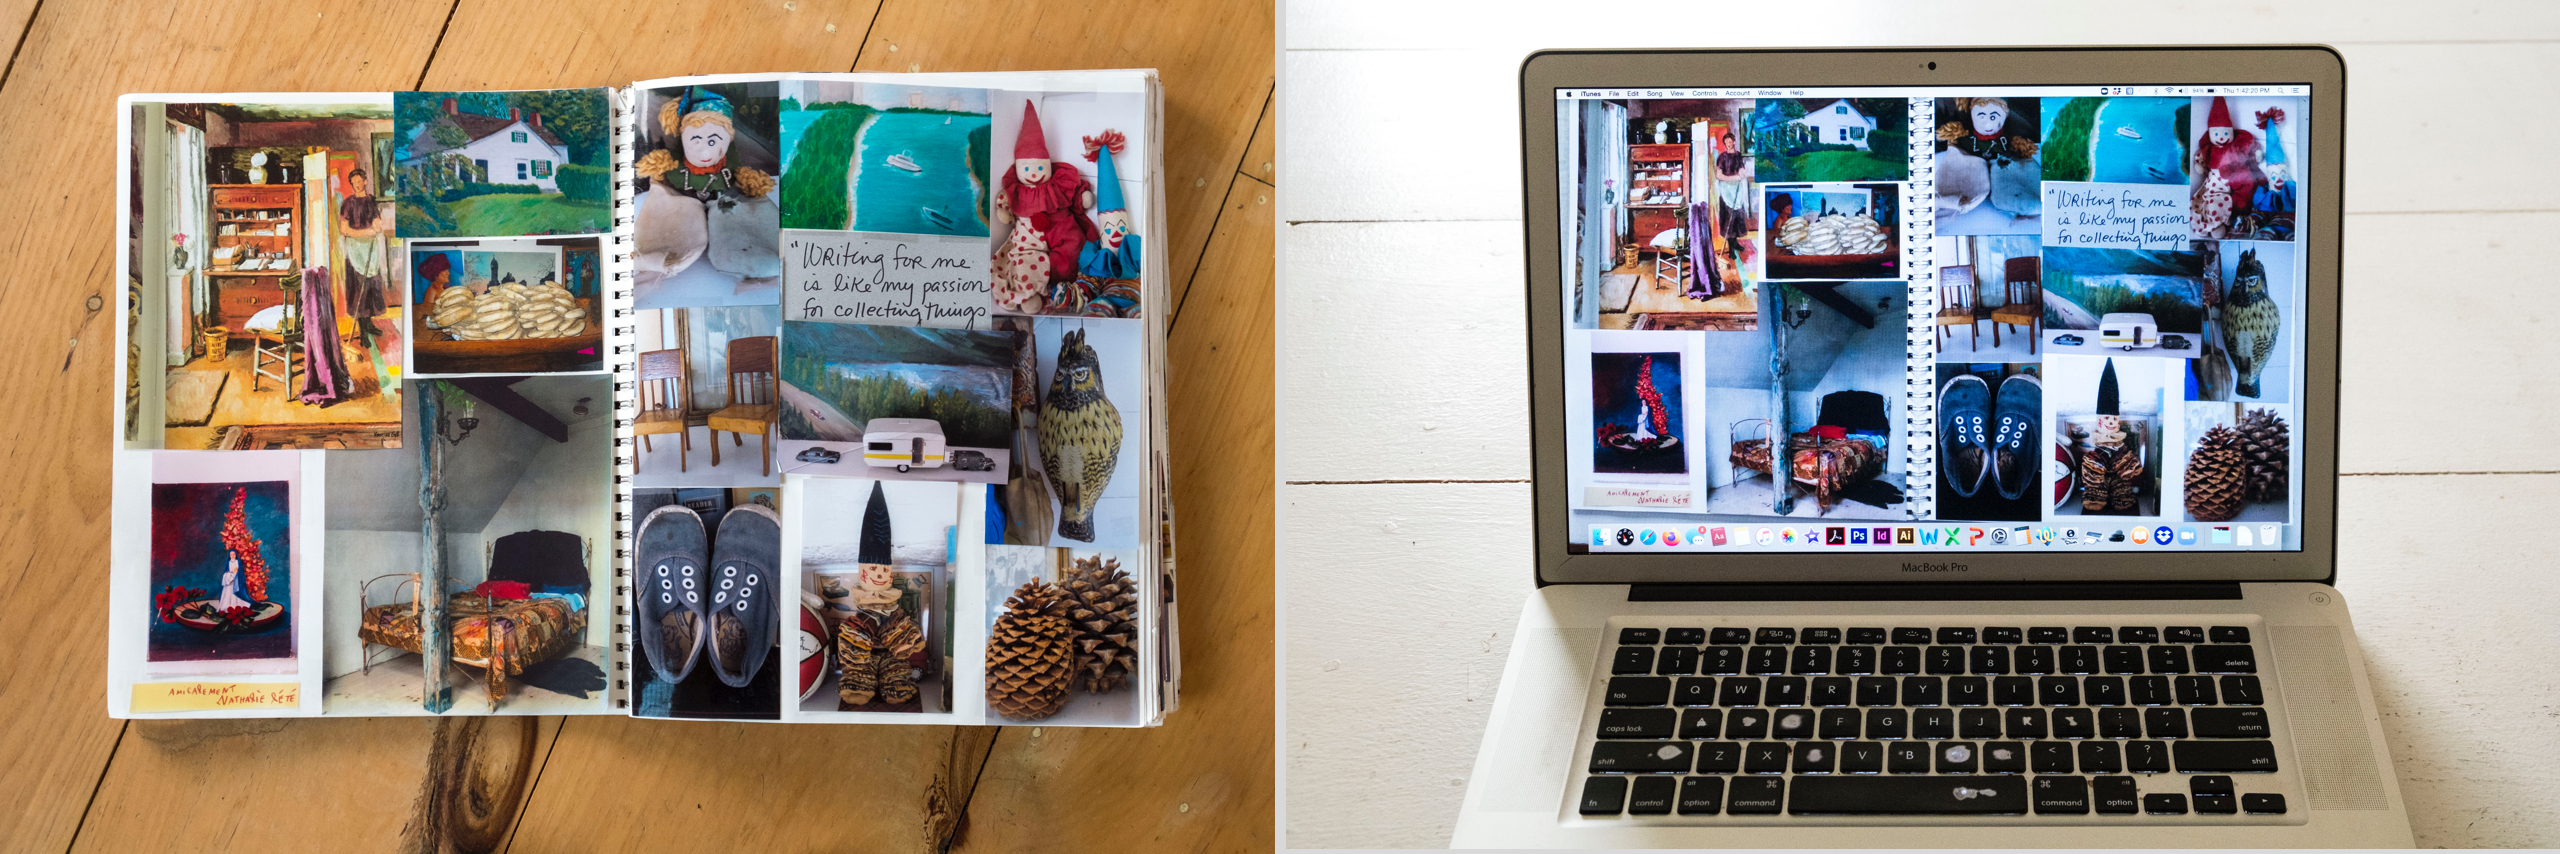 <em>Left:</em> A flea market collector's scrapbook of found treasures collaged into an oversize scrapbook. (Guess whose?); <em>Right:</em> Create a digital collage and save it on your computer's desktop. Personalize it with a handwritten message and change it often